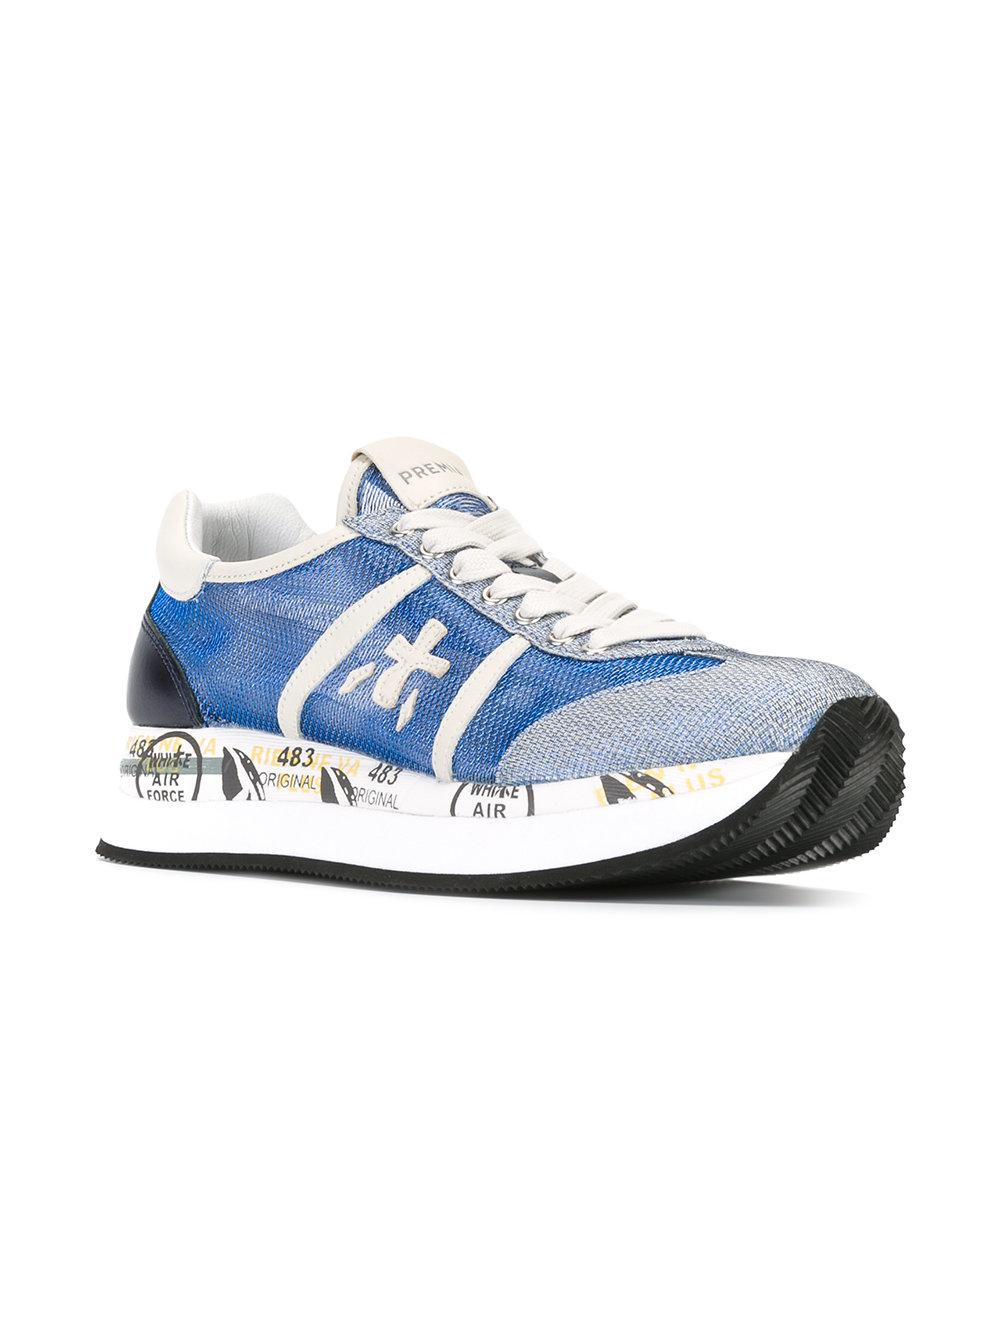 Premiata Leather Conny Sneakers in Blue